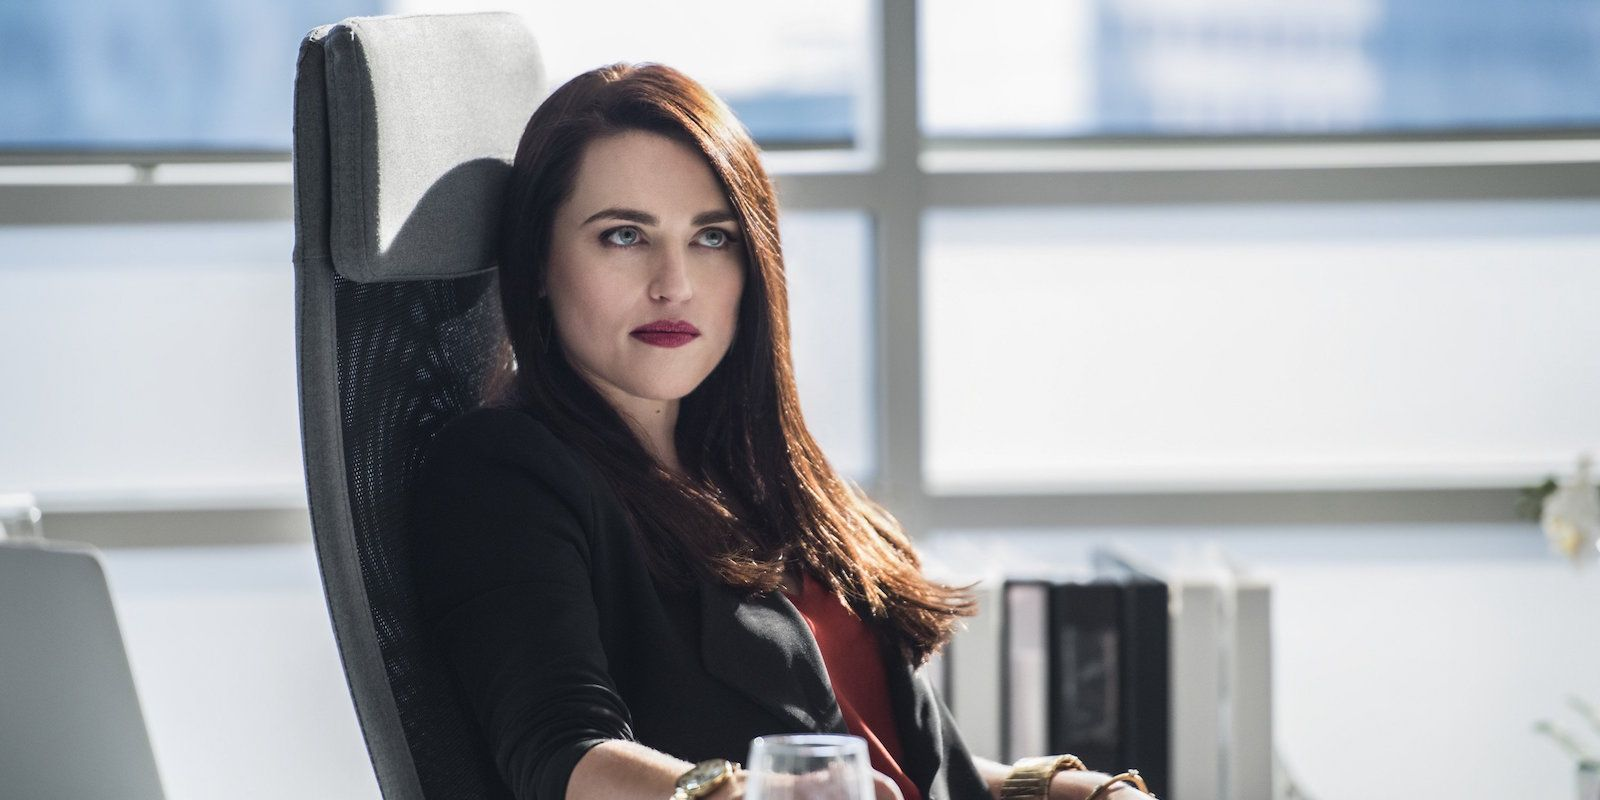 Lena Luthor from Supergirl portrayed by Katie McGrath